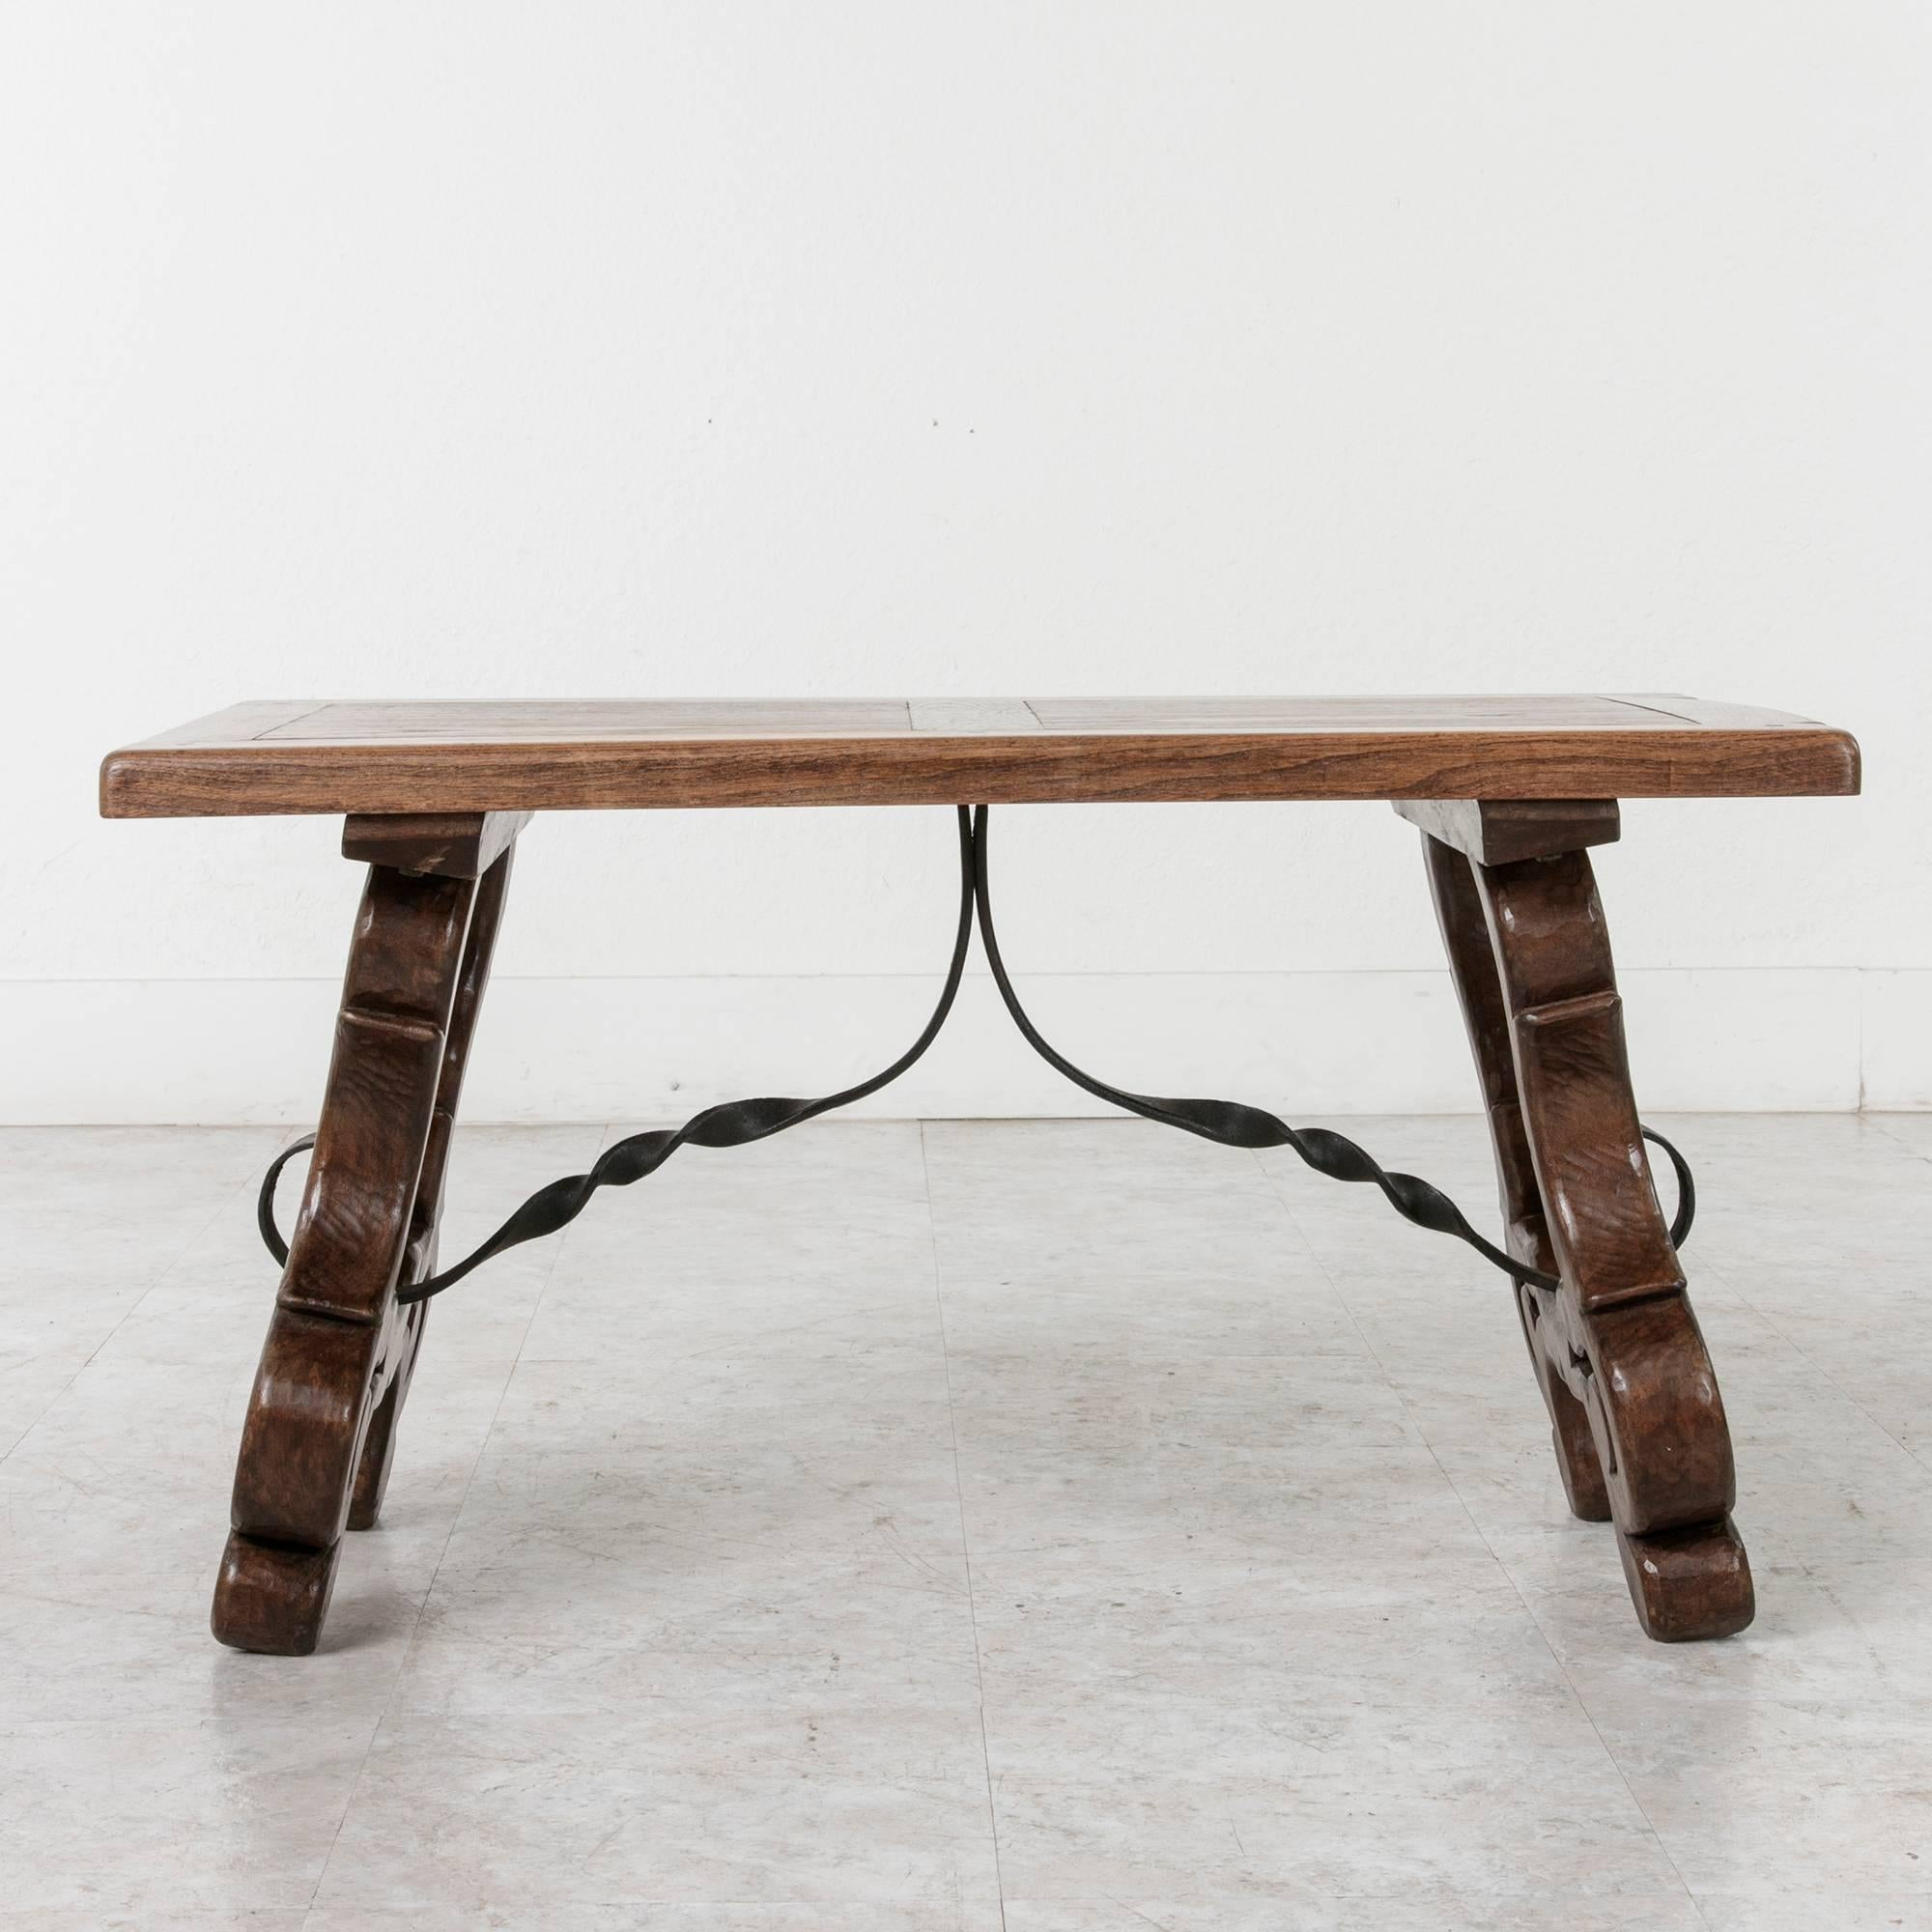 Wrought Iron Early 20th Century Spanish Style Oak Coffee Table Or Bench  With Iron Stretcher For